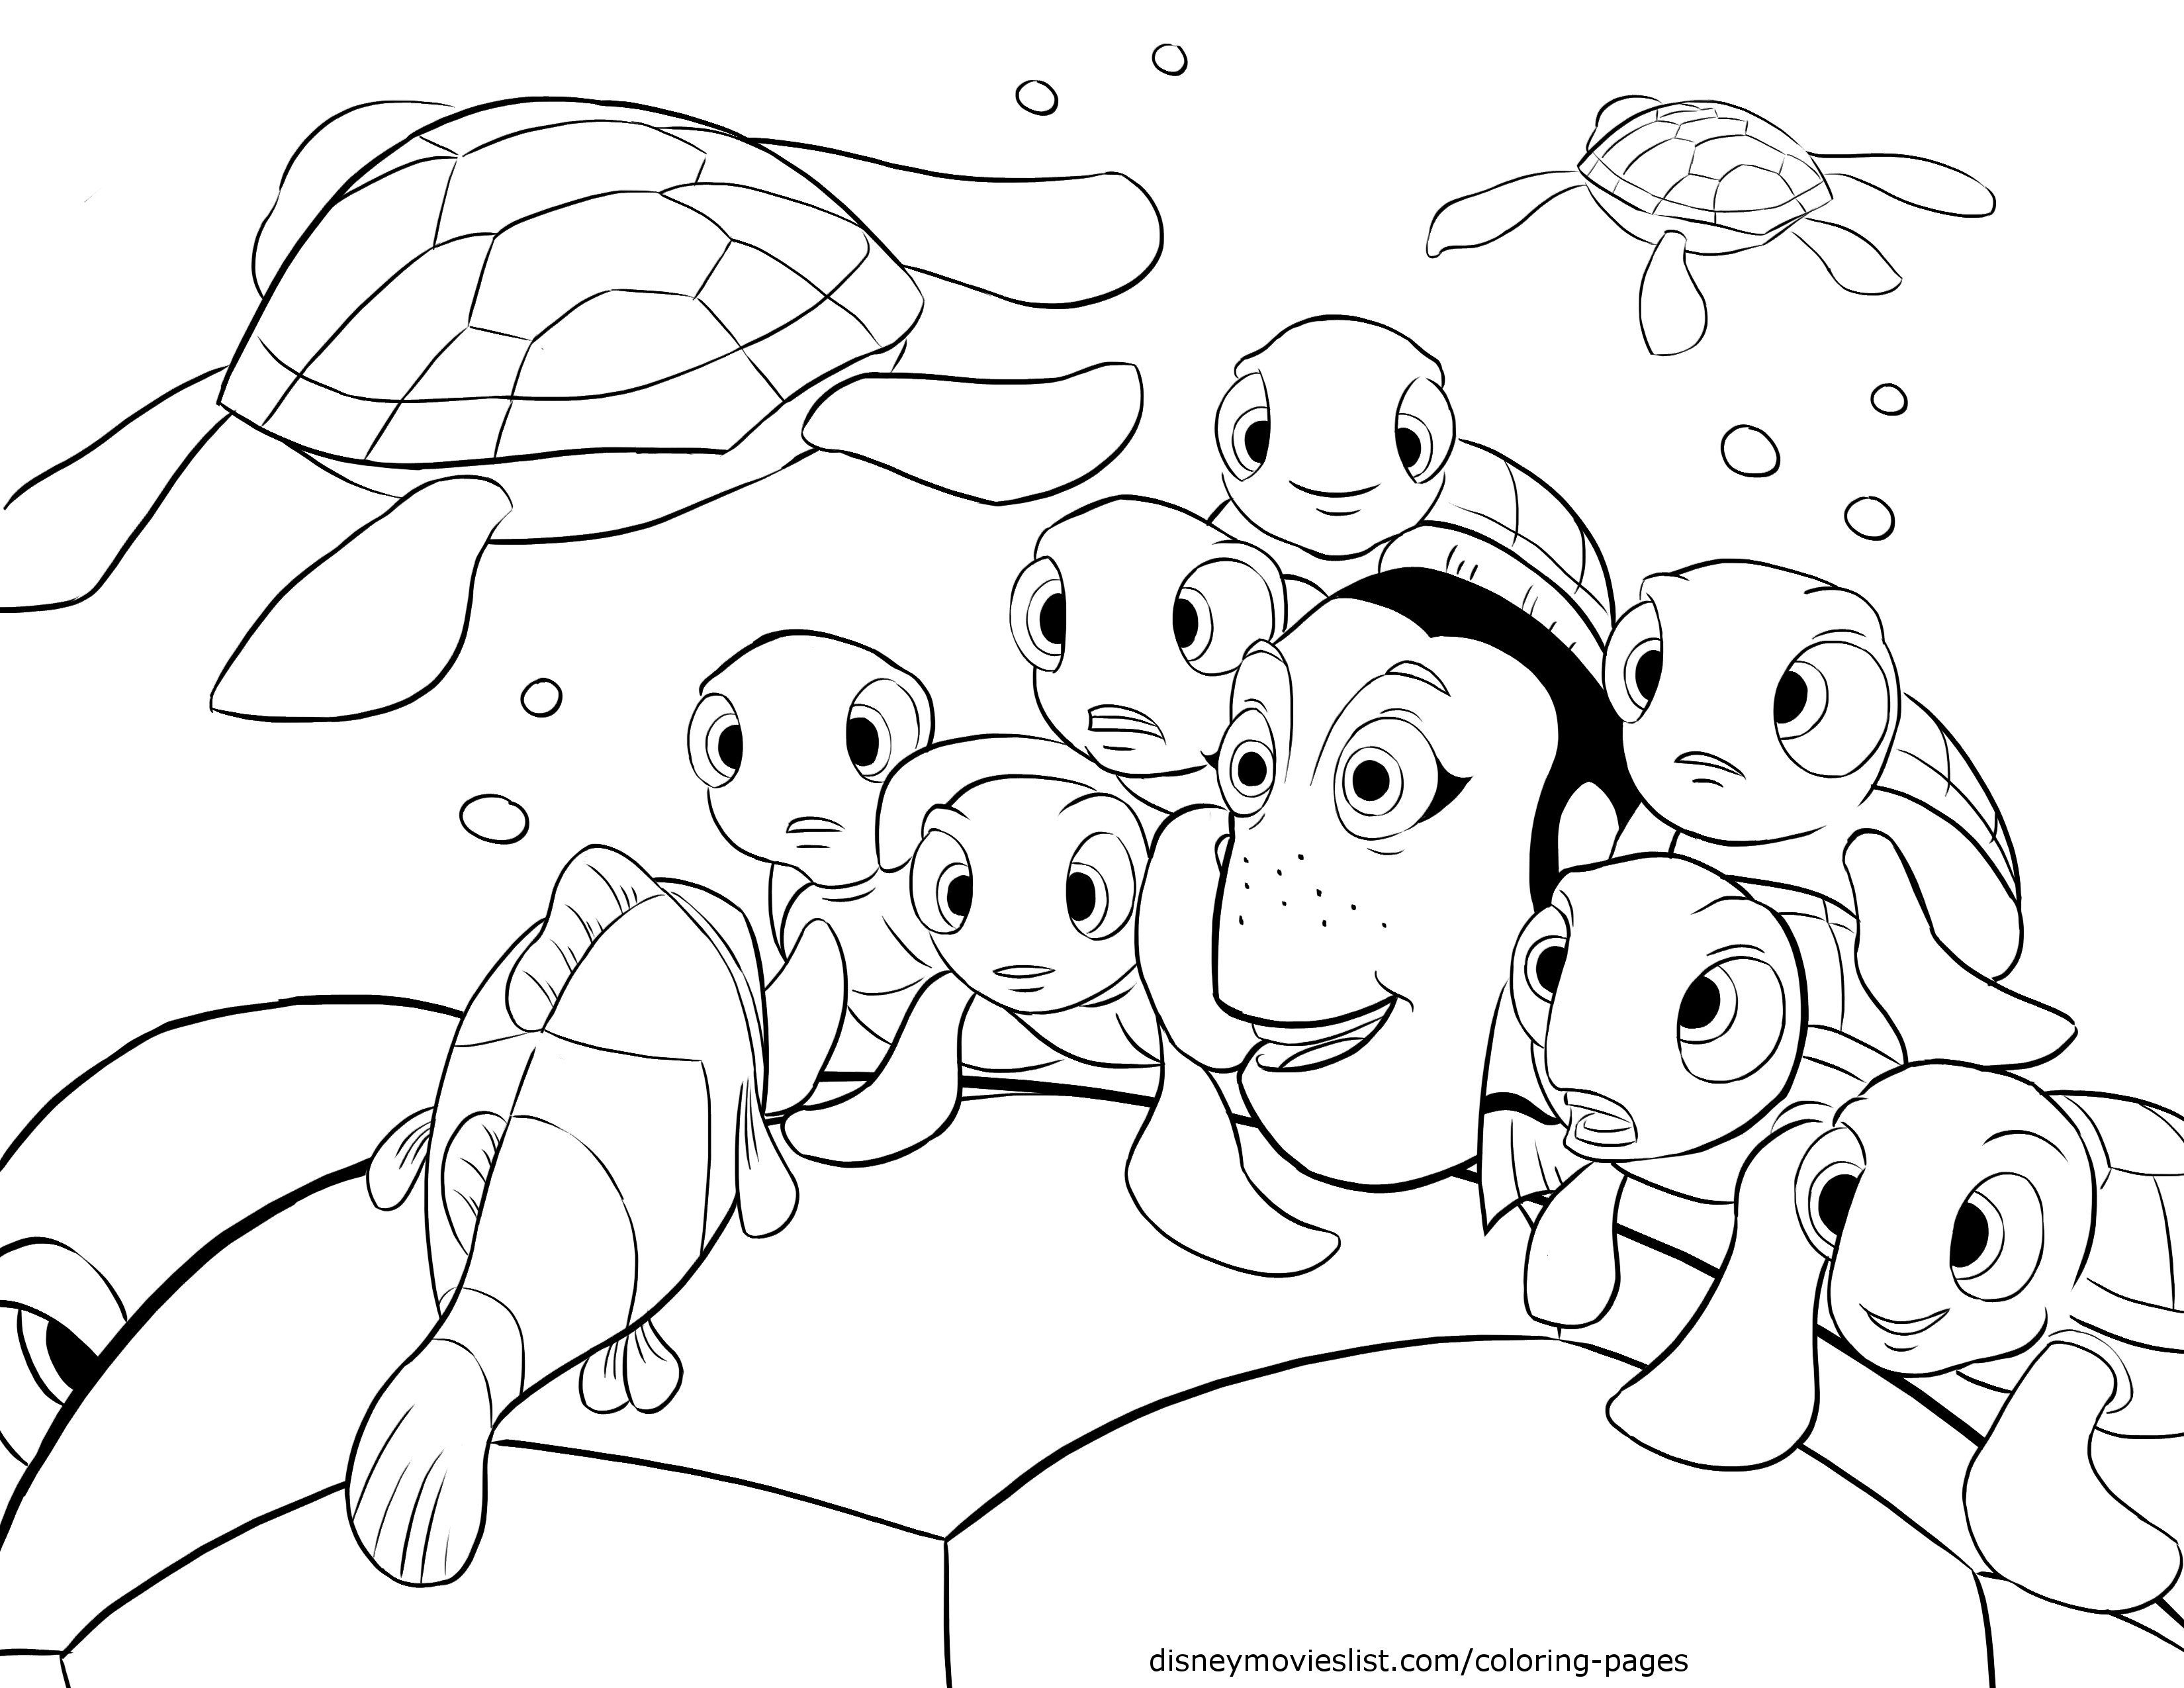 3300x2550 Disney's Finding Nemo Crush, Squirt Telling Stories Coloring Page